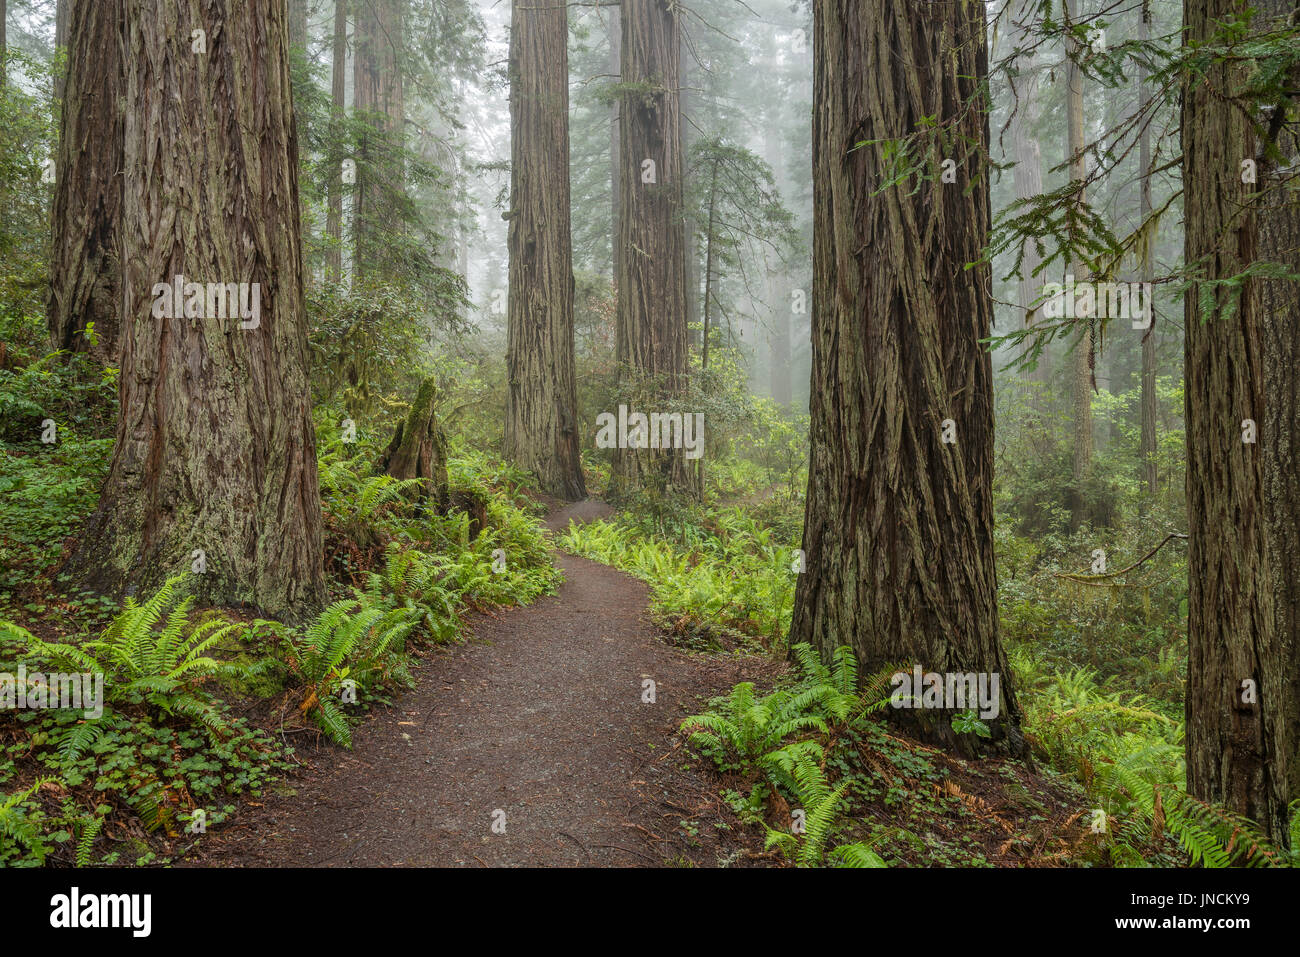 Trail through Lady Bird Johnson Grove, Redwoods State and National Parks, Calfornia. - Stock Image